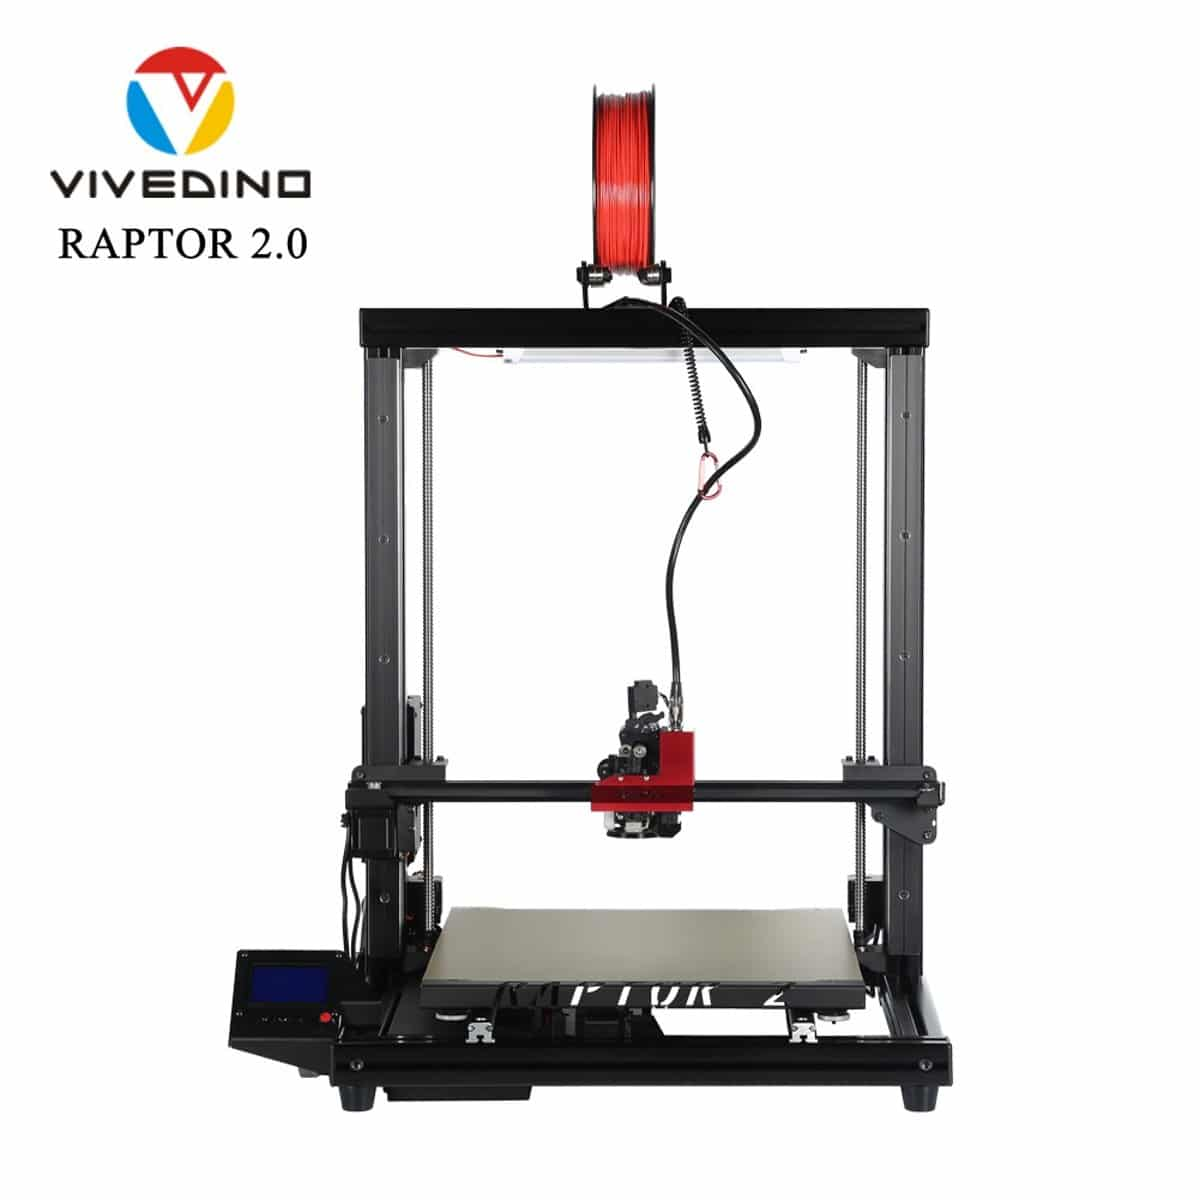 Image of Vivedino Formbot Raptor 2.0 - 400x400x500mm